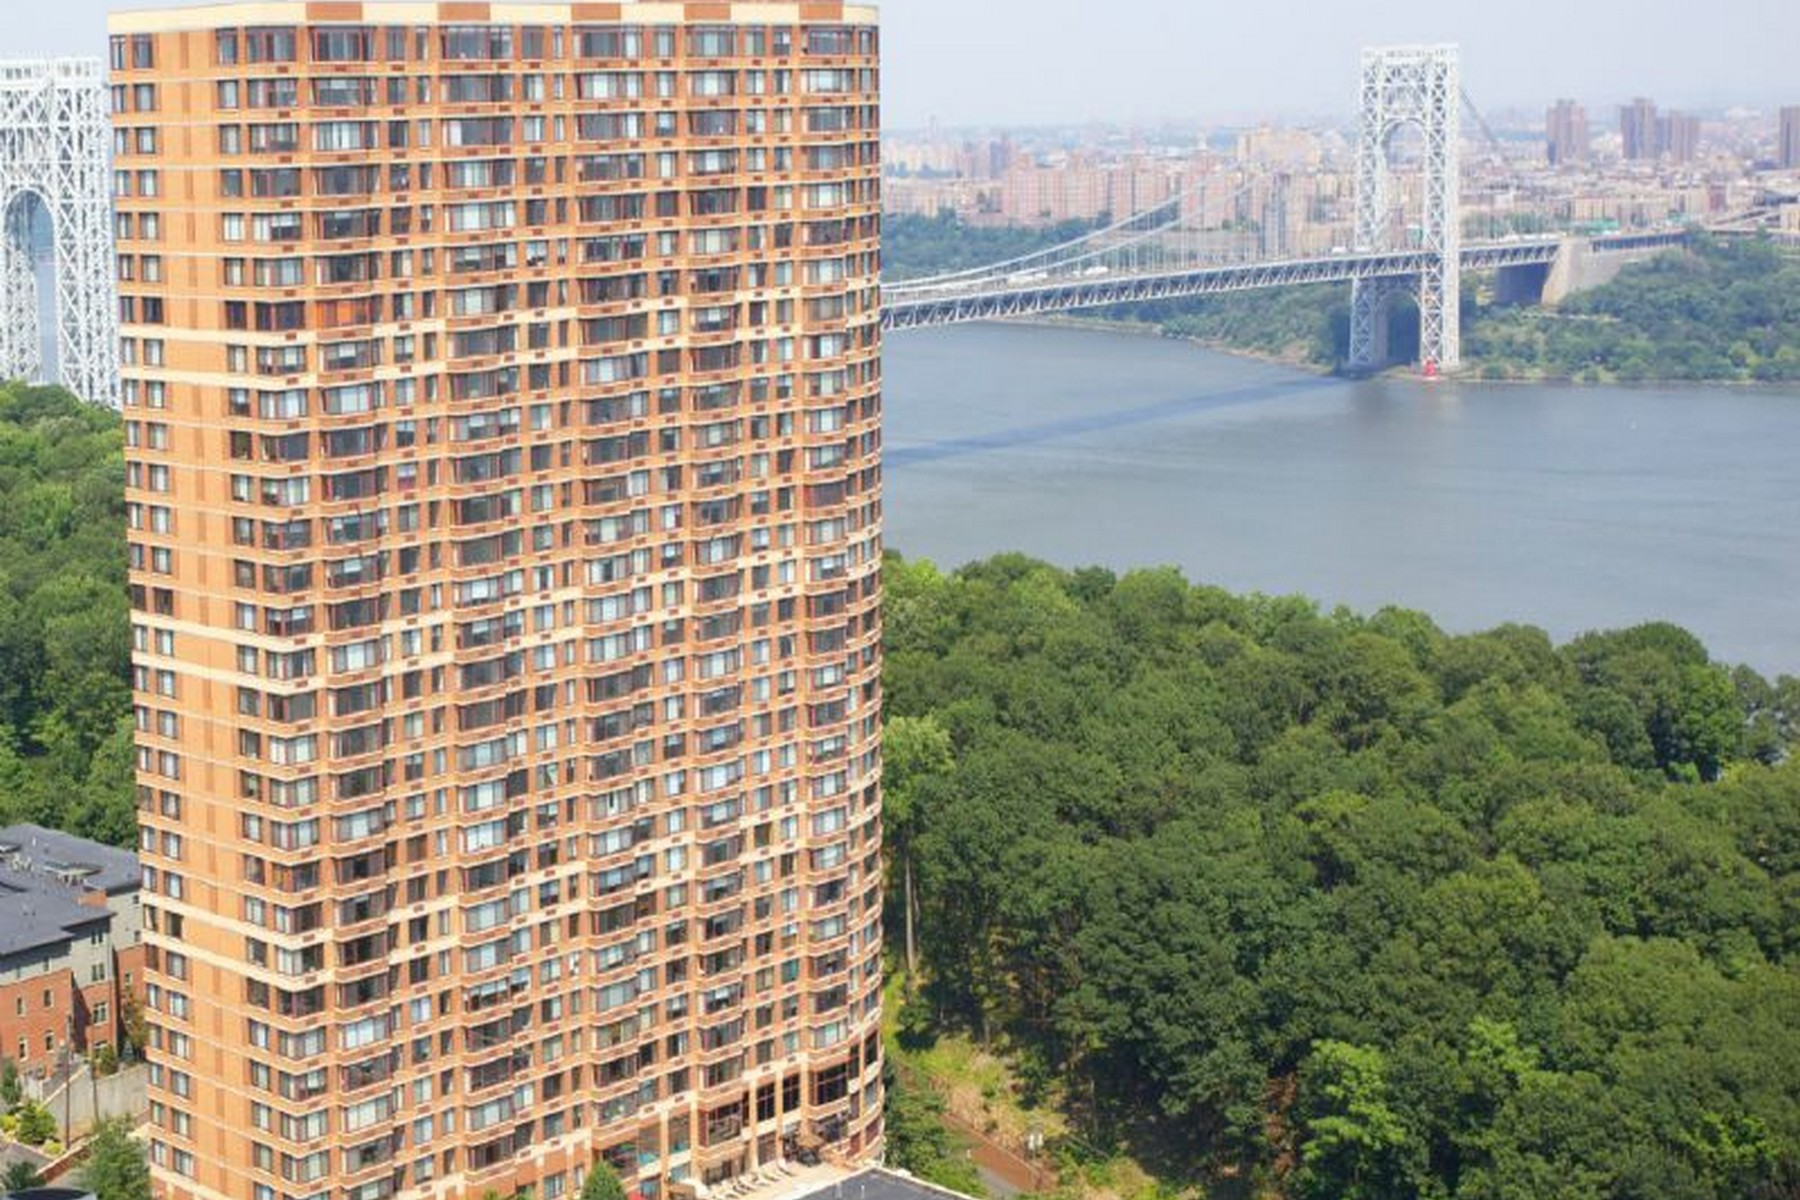 Condominium for Sale at The Palisades 100 Old Palisade Road, #2906, Fort Lee, New Jersey 07024 United States